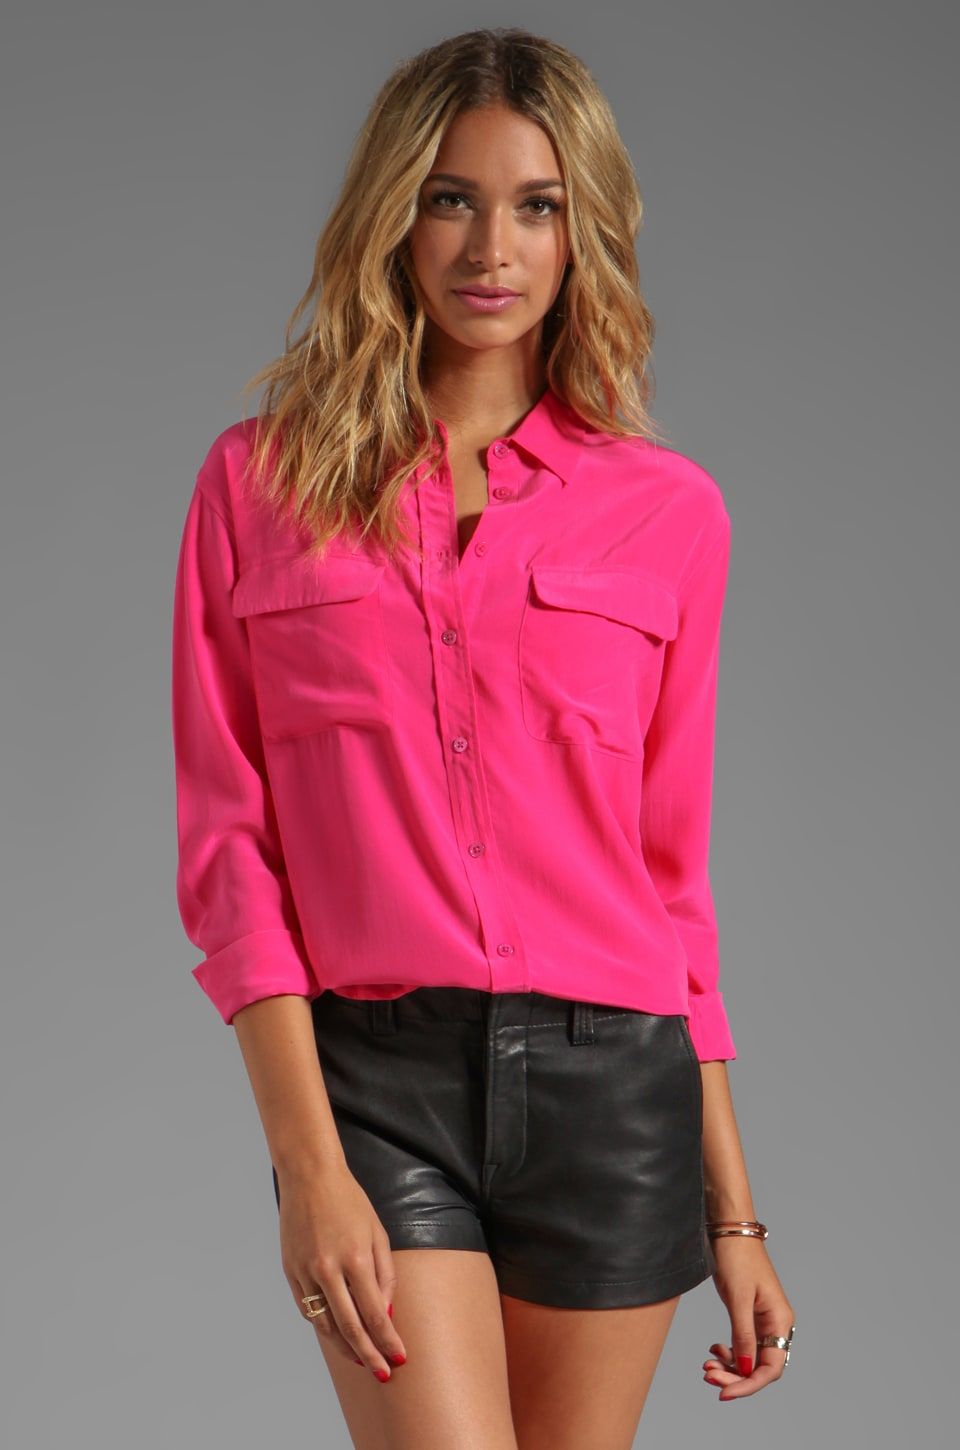 Equipment Signature Blouse in Fuchsia